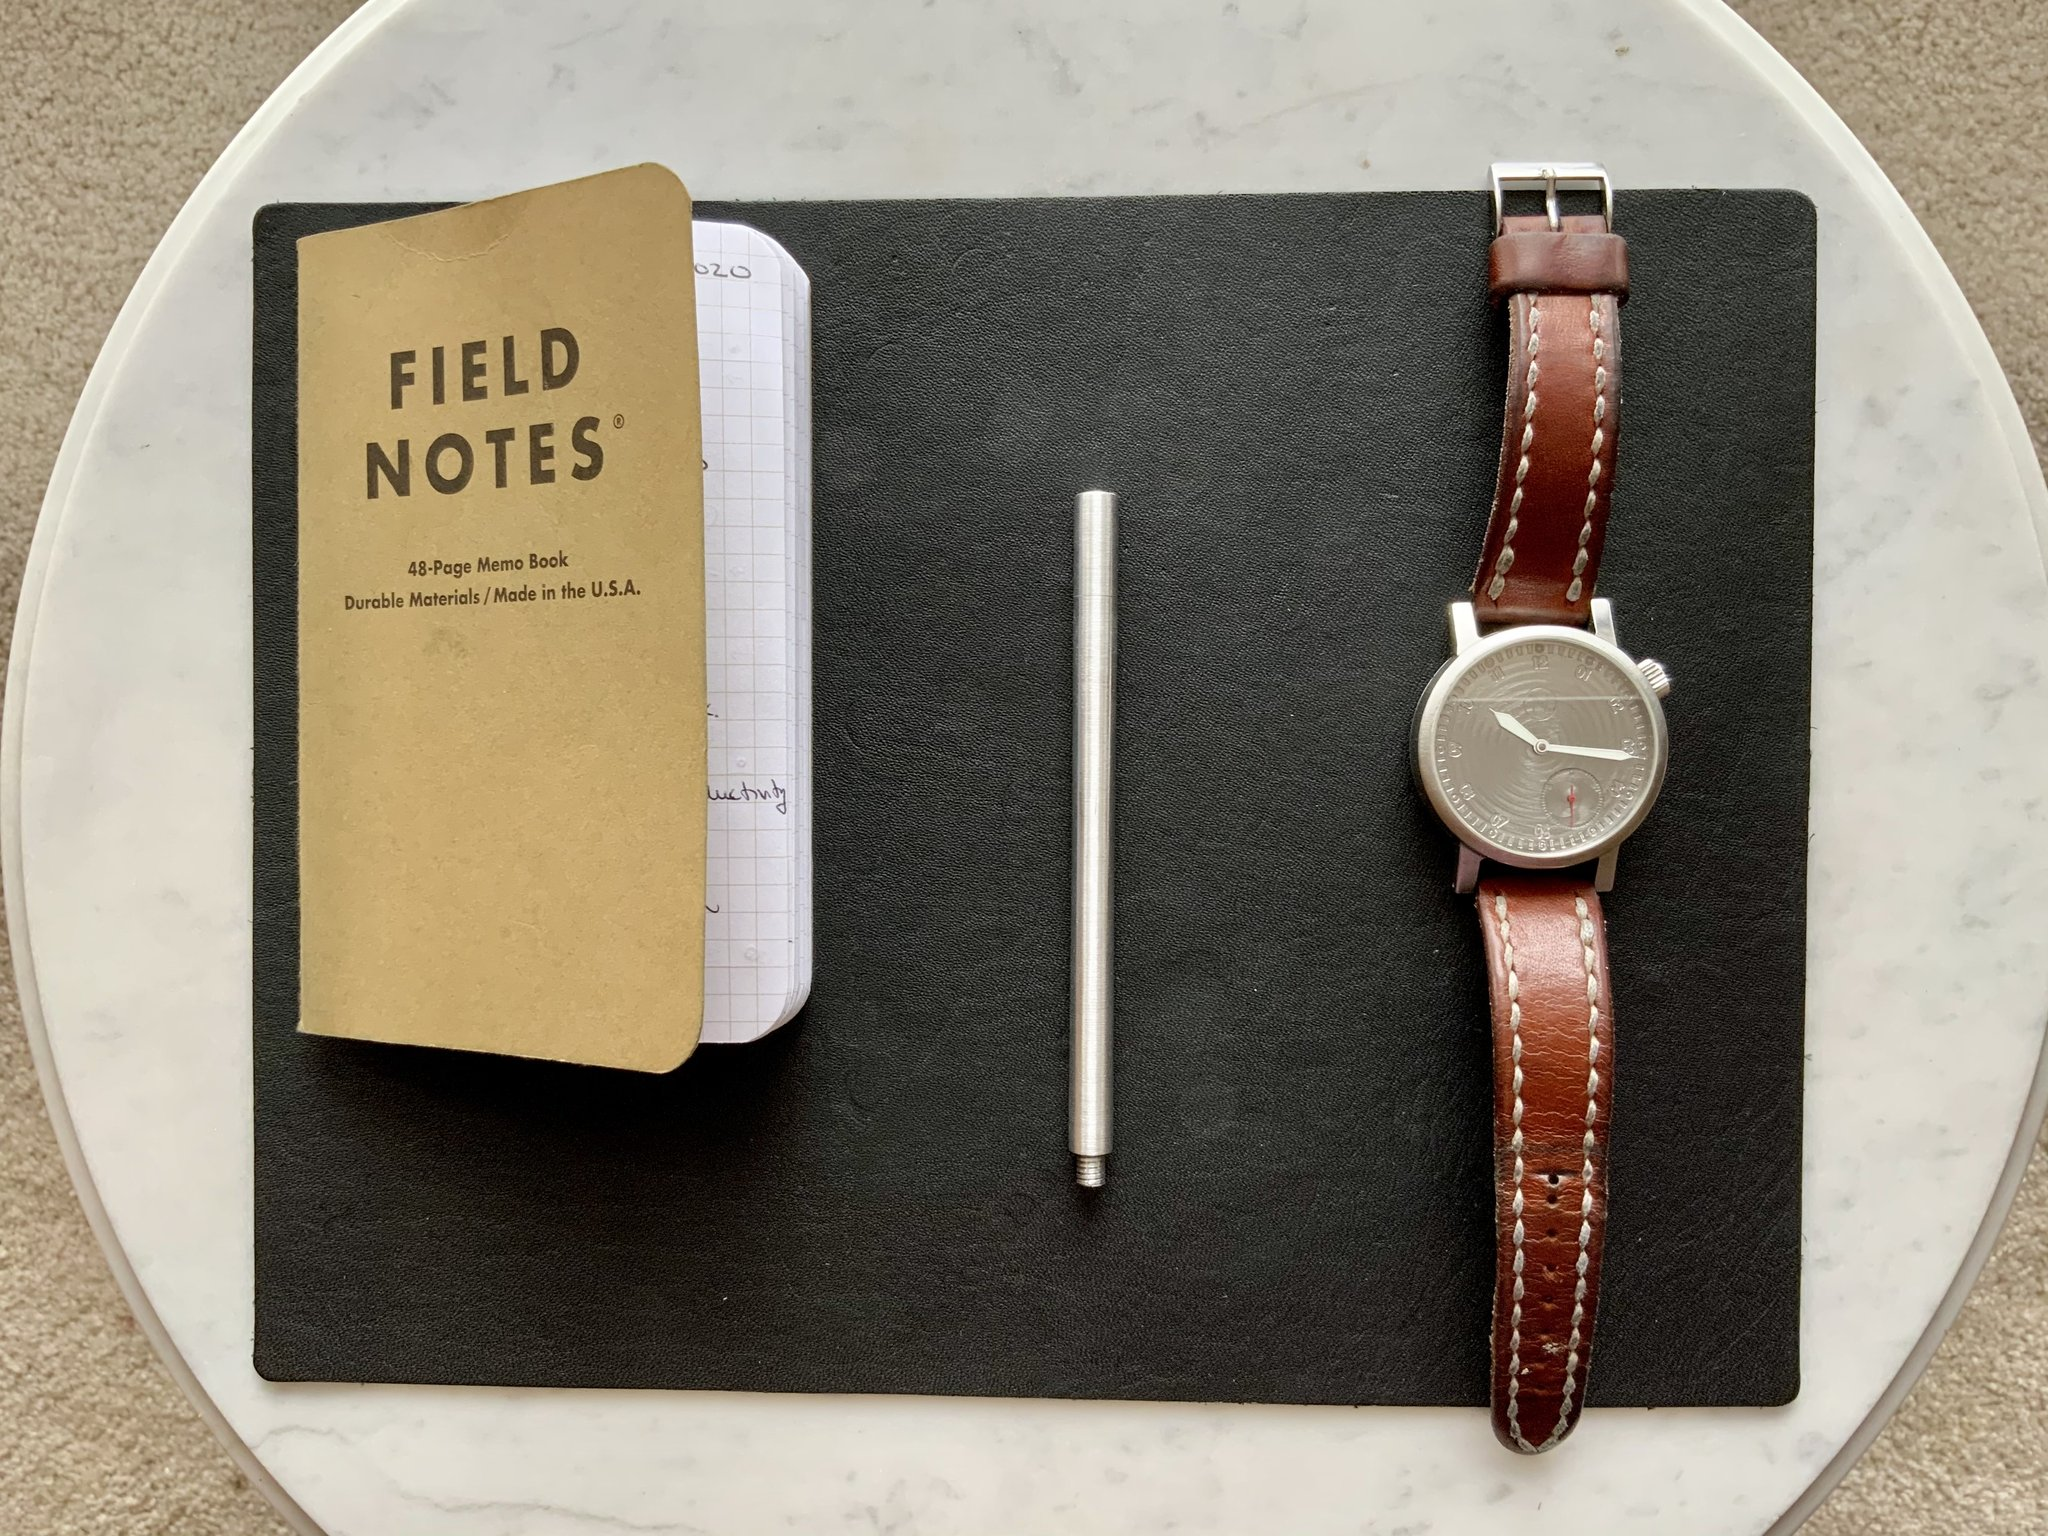 Novo pen, watch and a notebook on table.